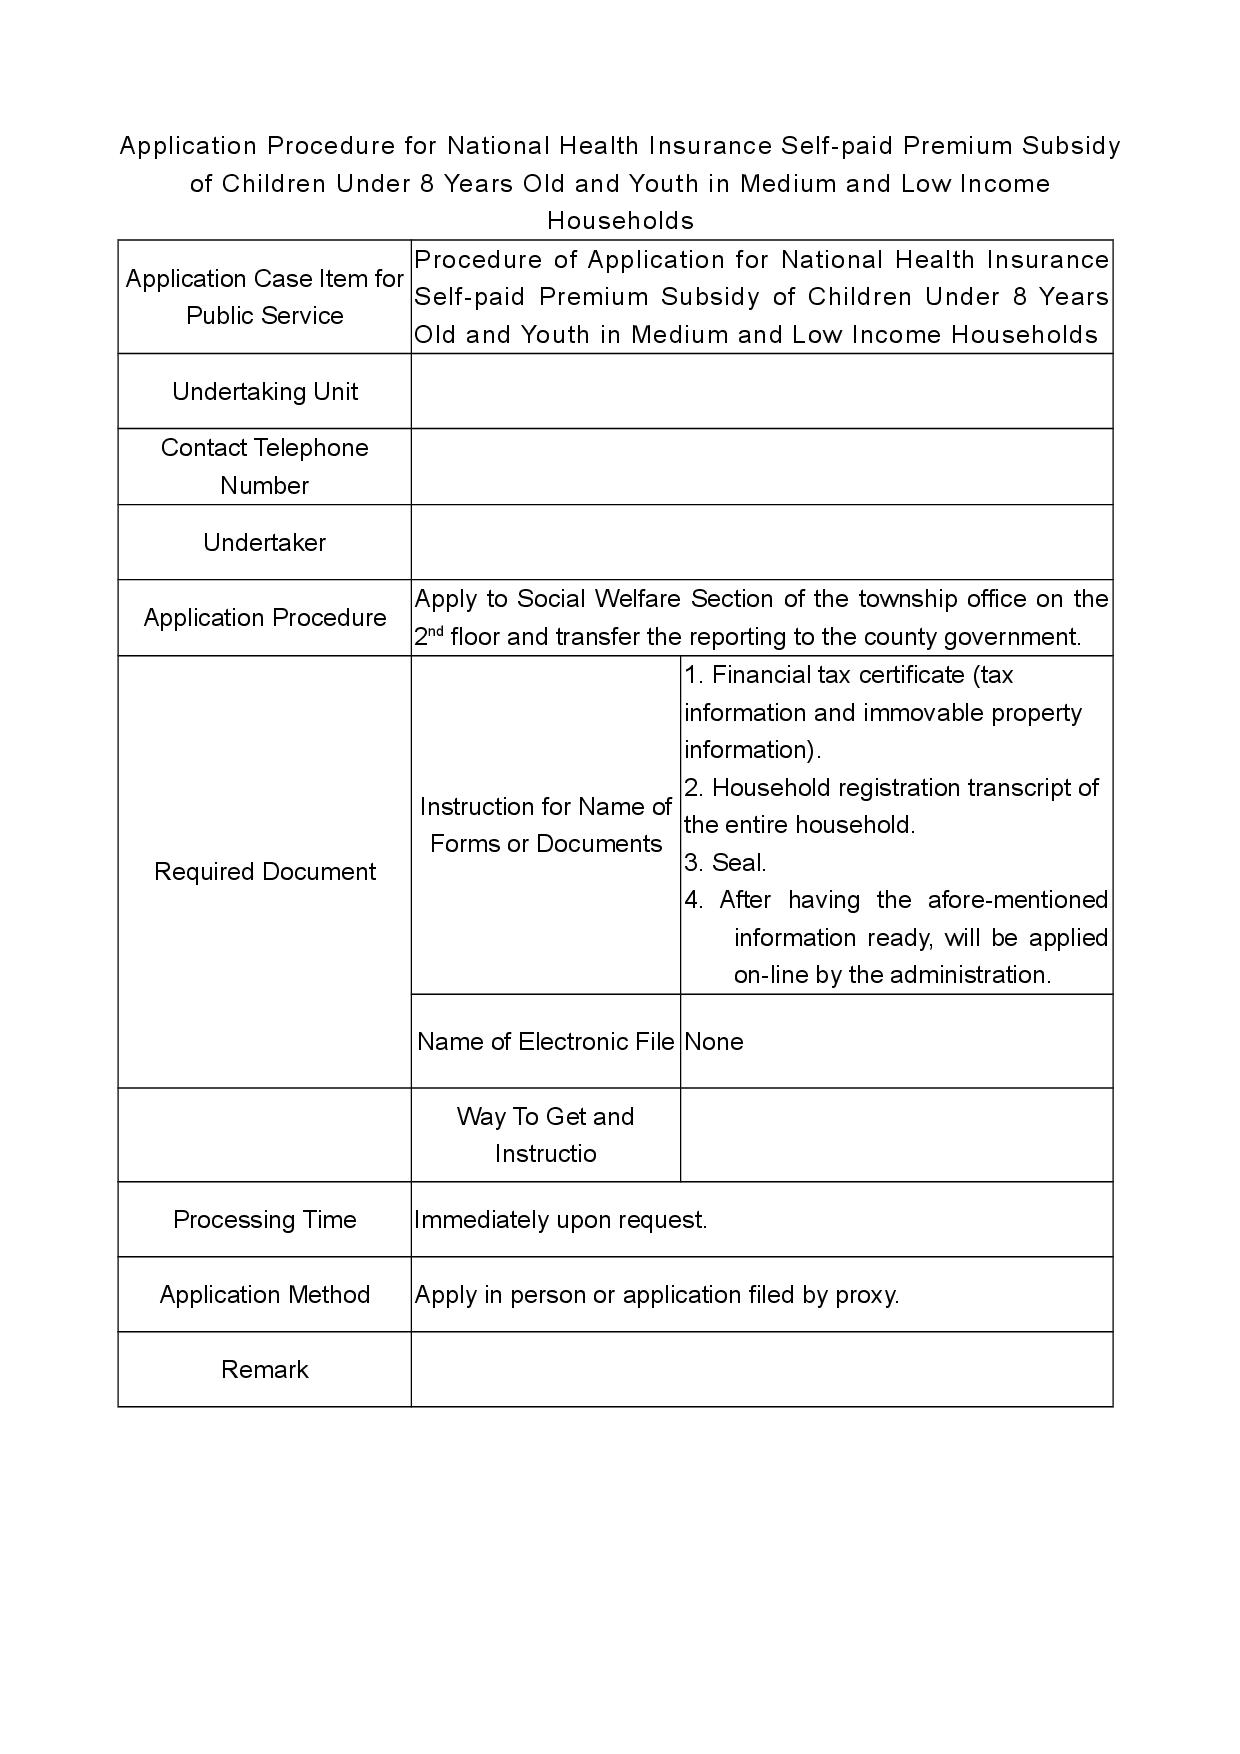 Application Procedure for National Health Insurance Self-paid Premium Subsidy of Children Under 8 Years Old and Youth in Medium and Low Income Households